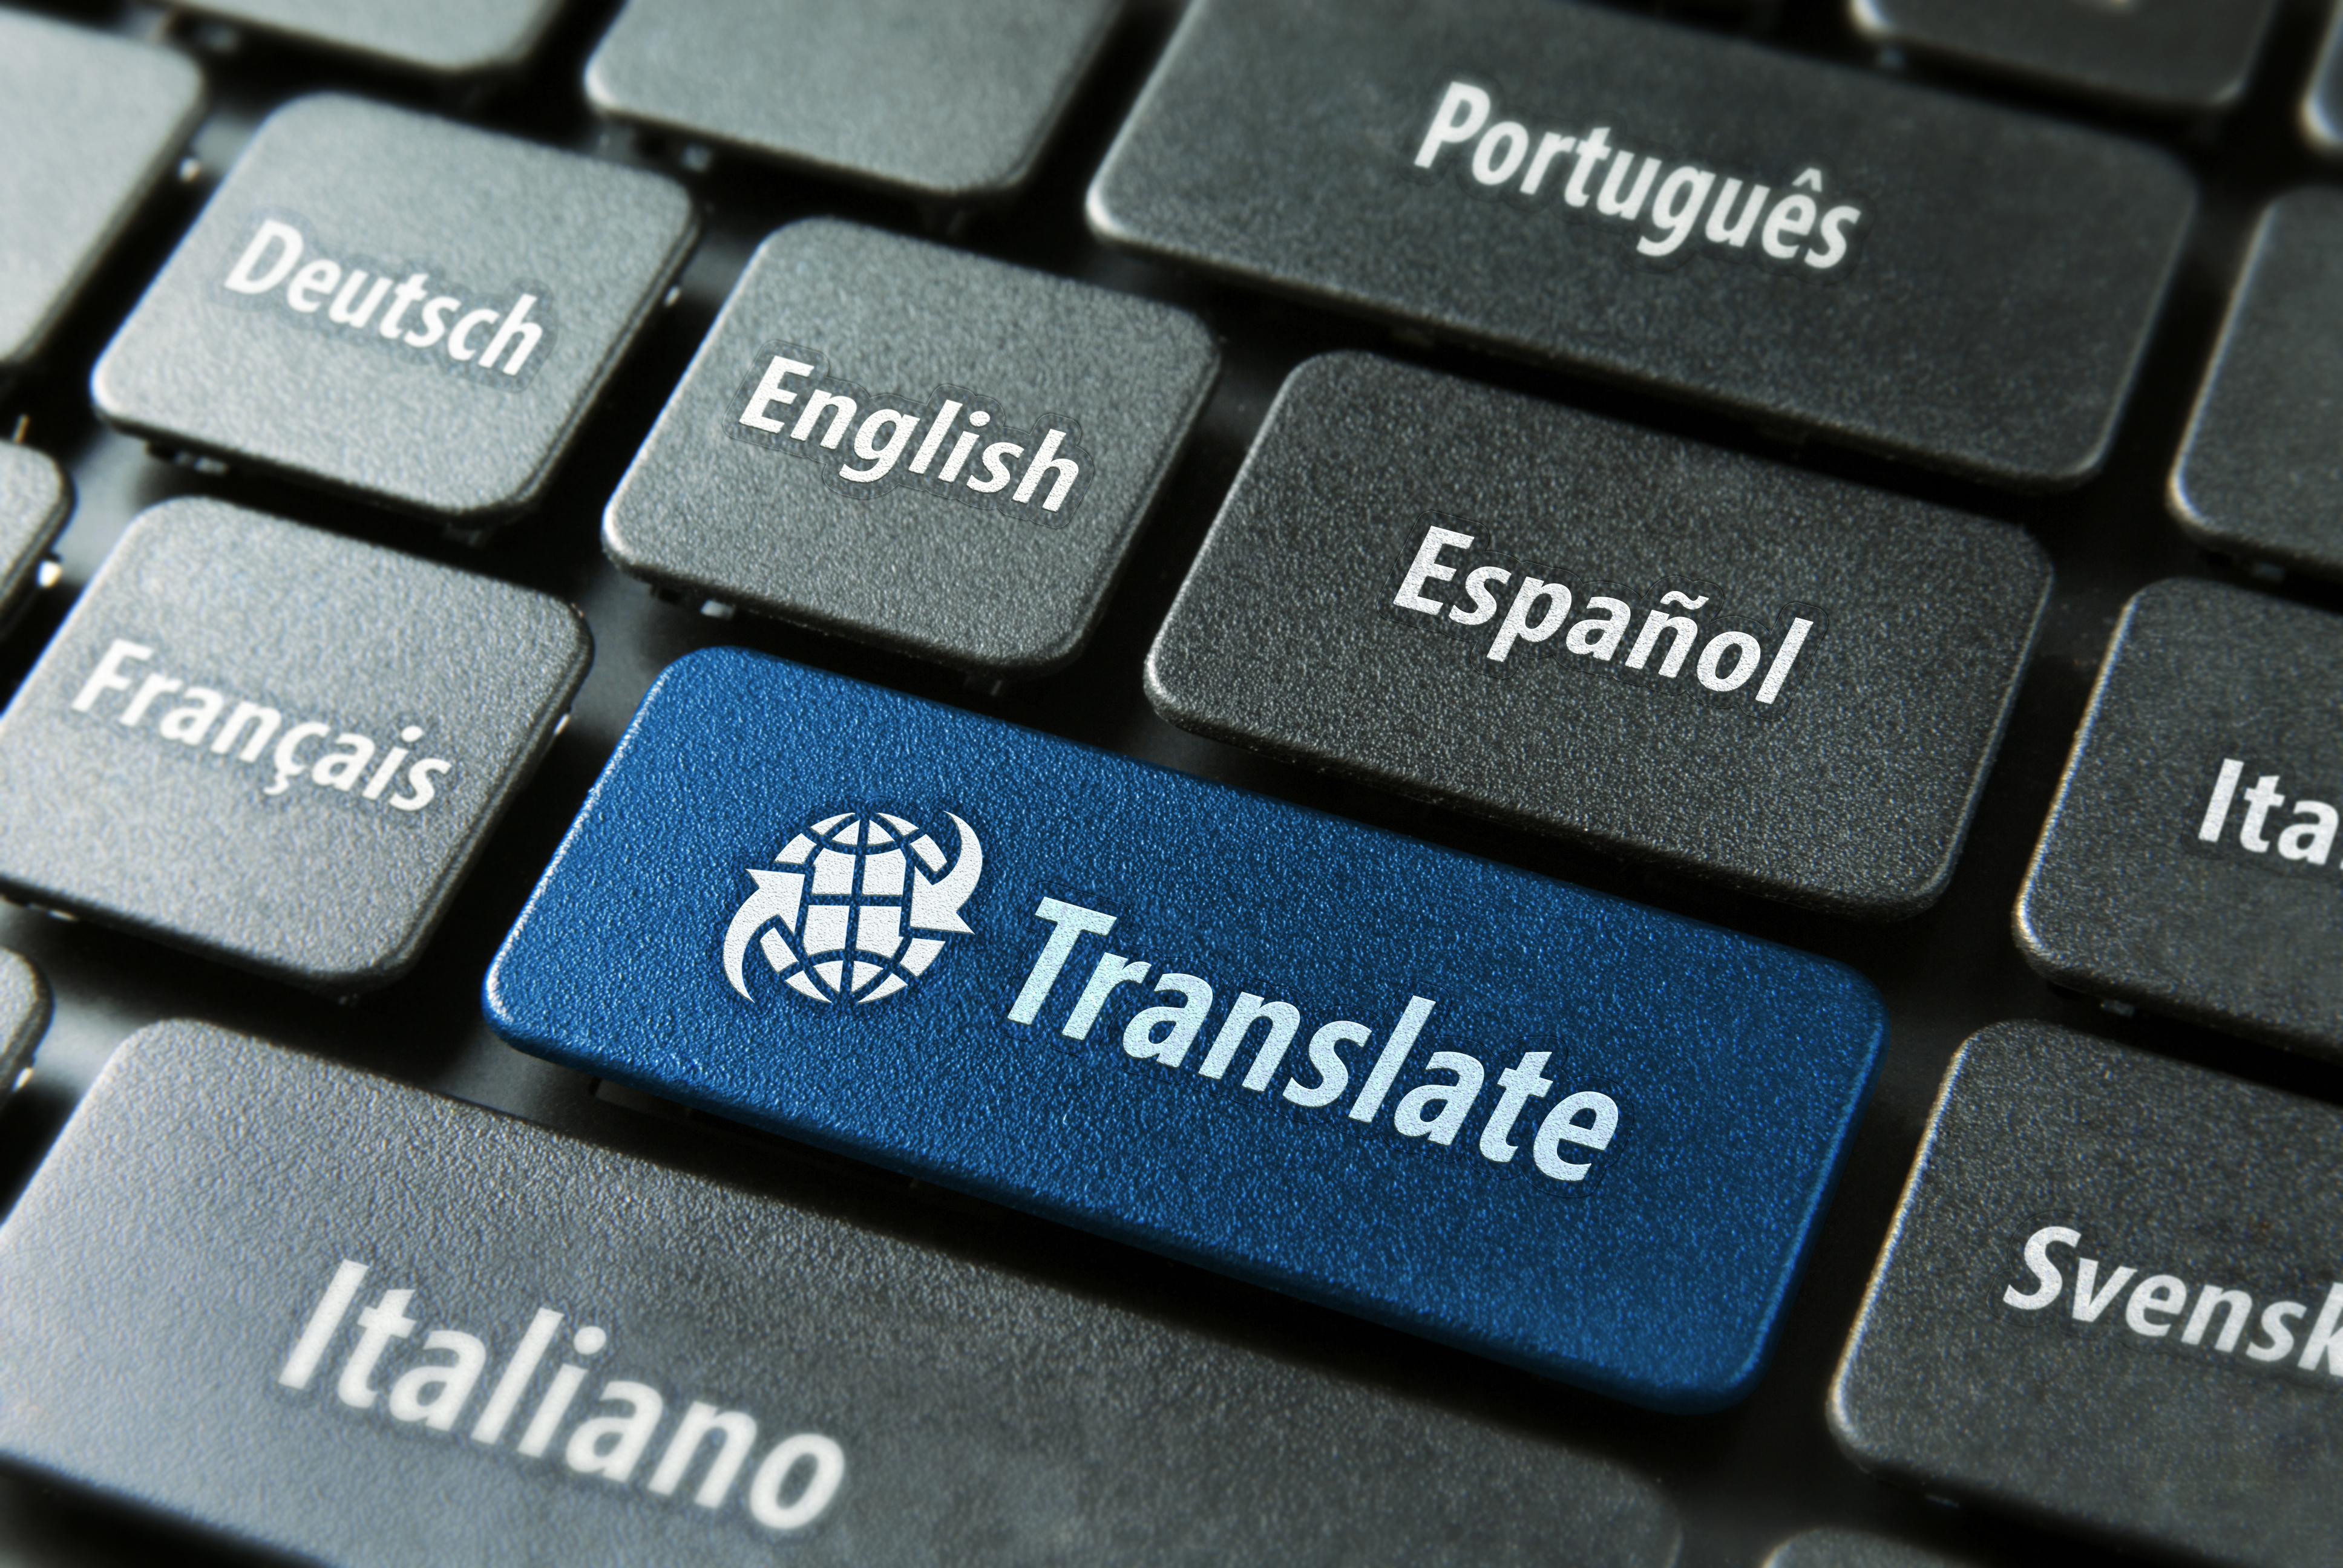 Translate Englsih, French or Arabic